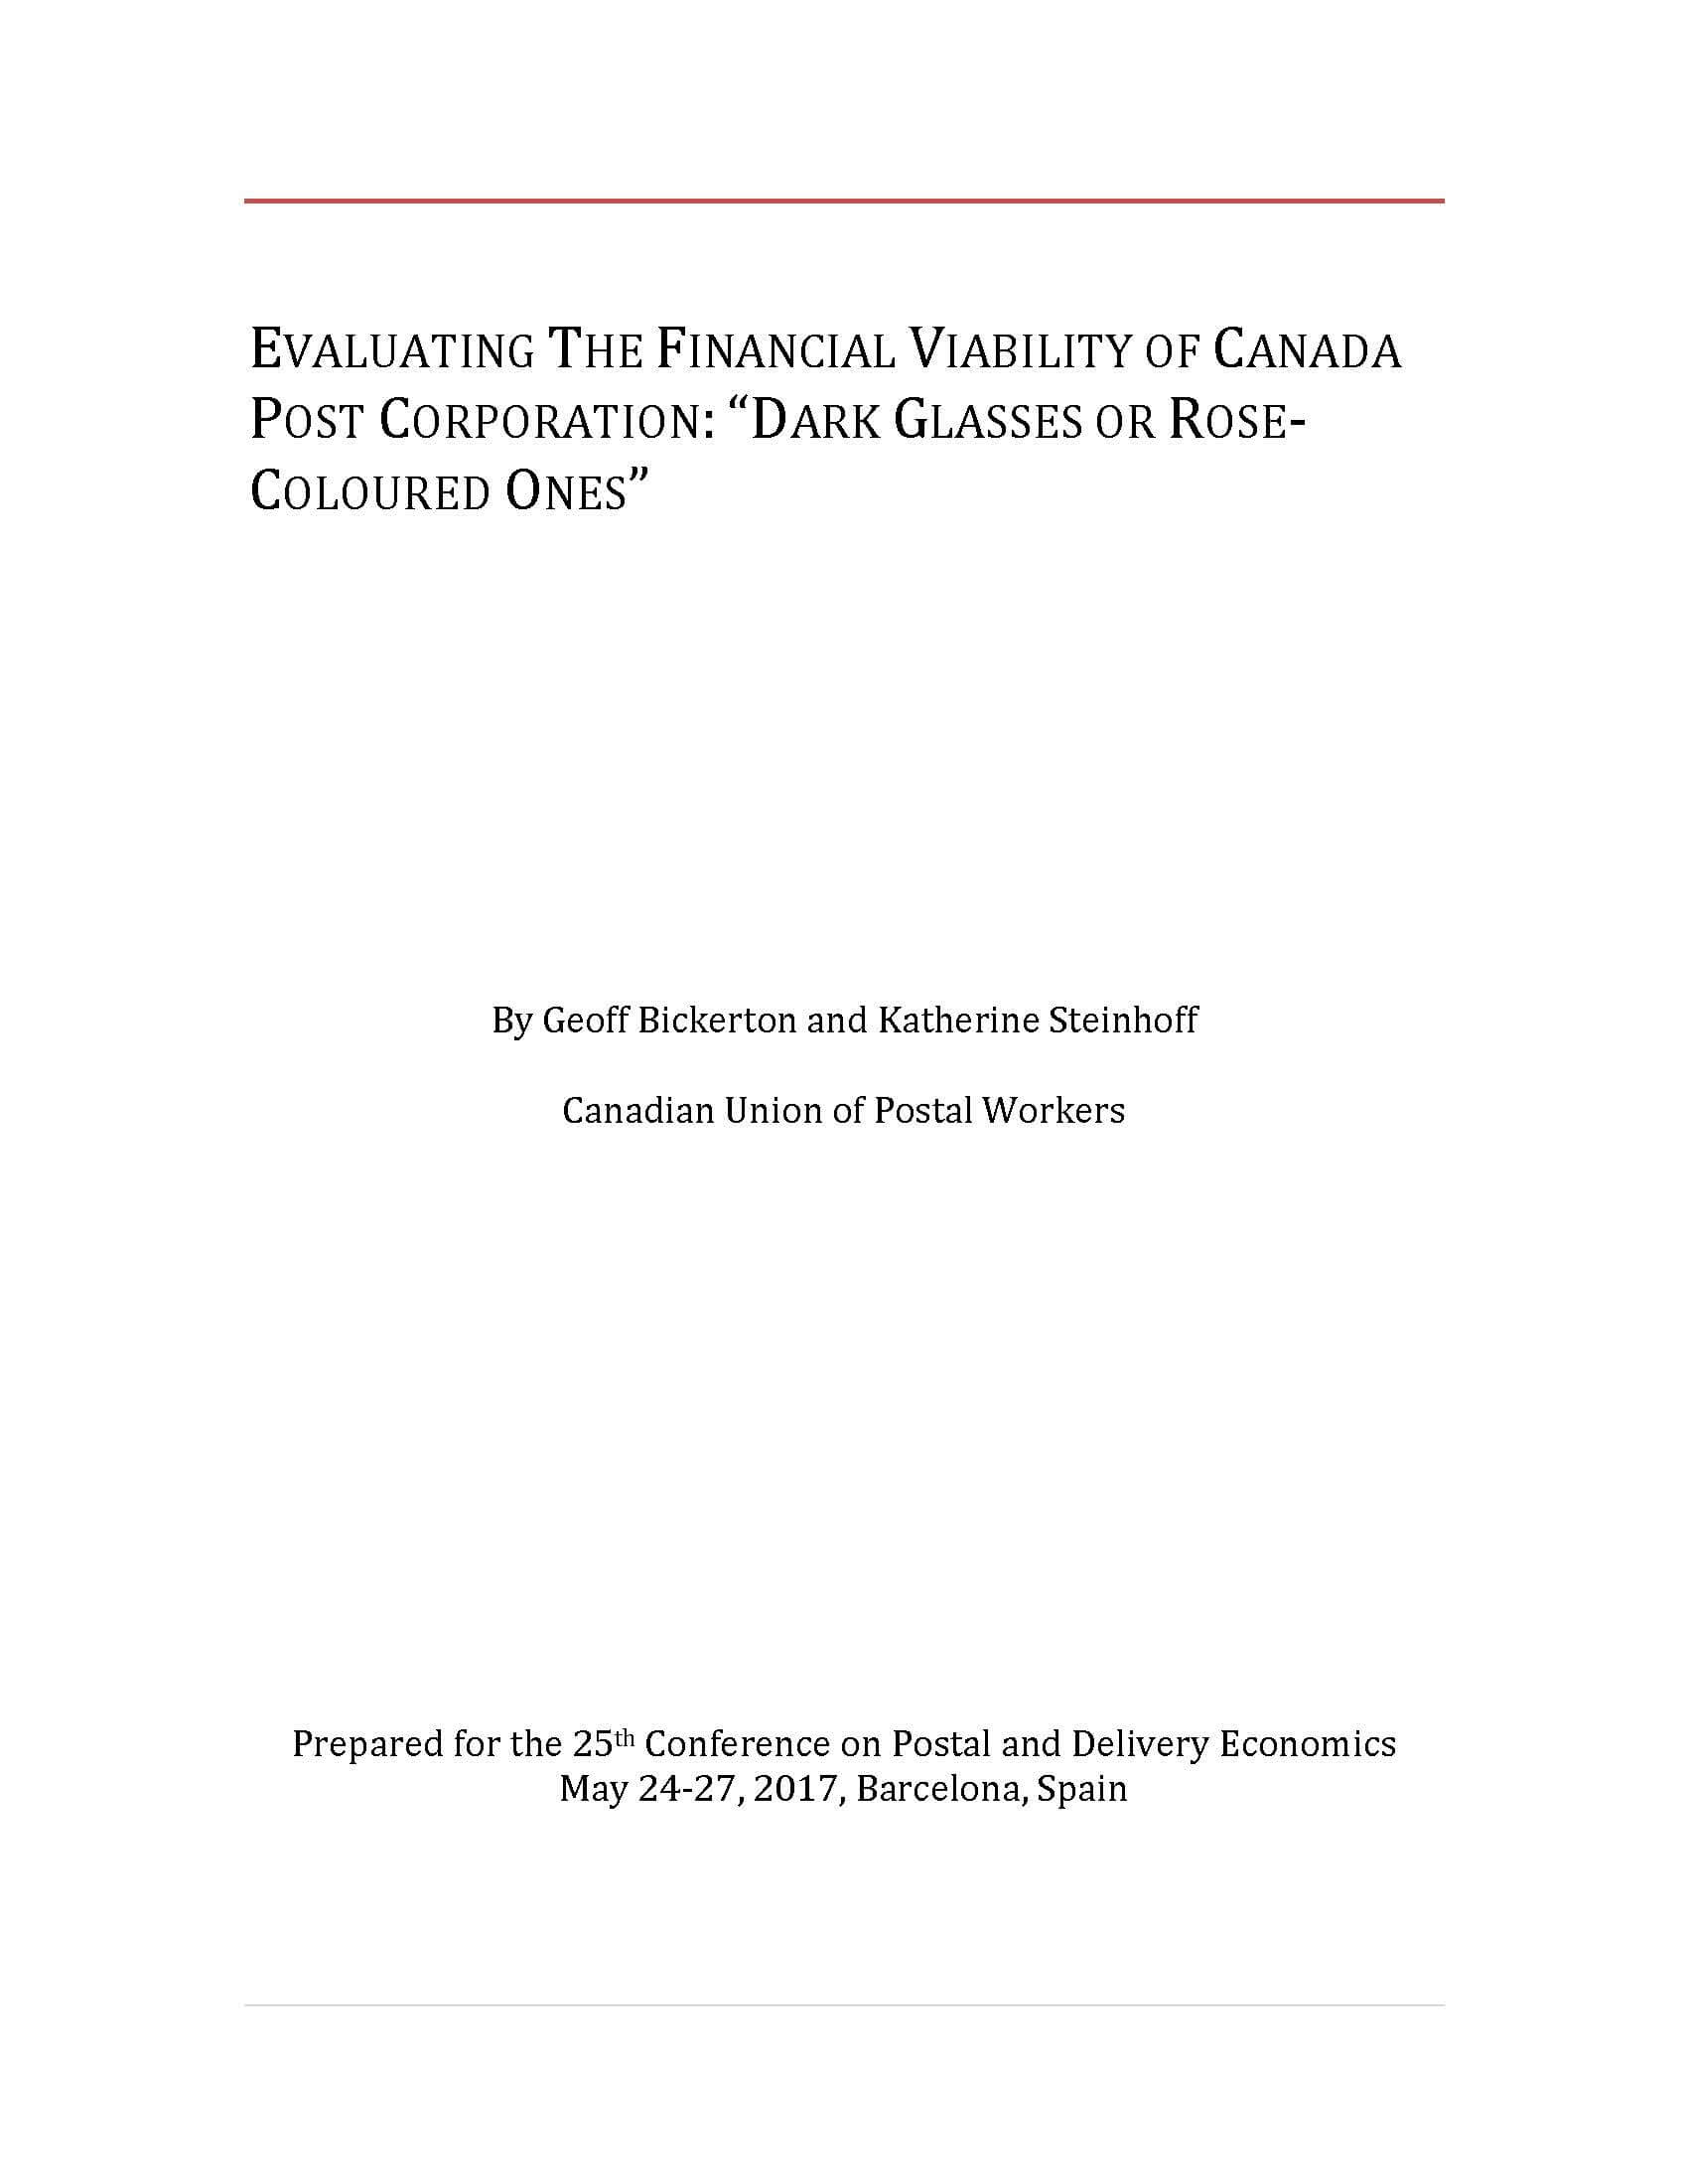 "Evaluating The Financial Viability of Canada Post Corporation: ""Dark Glasses or Rose-Coloured Ones"""